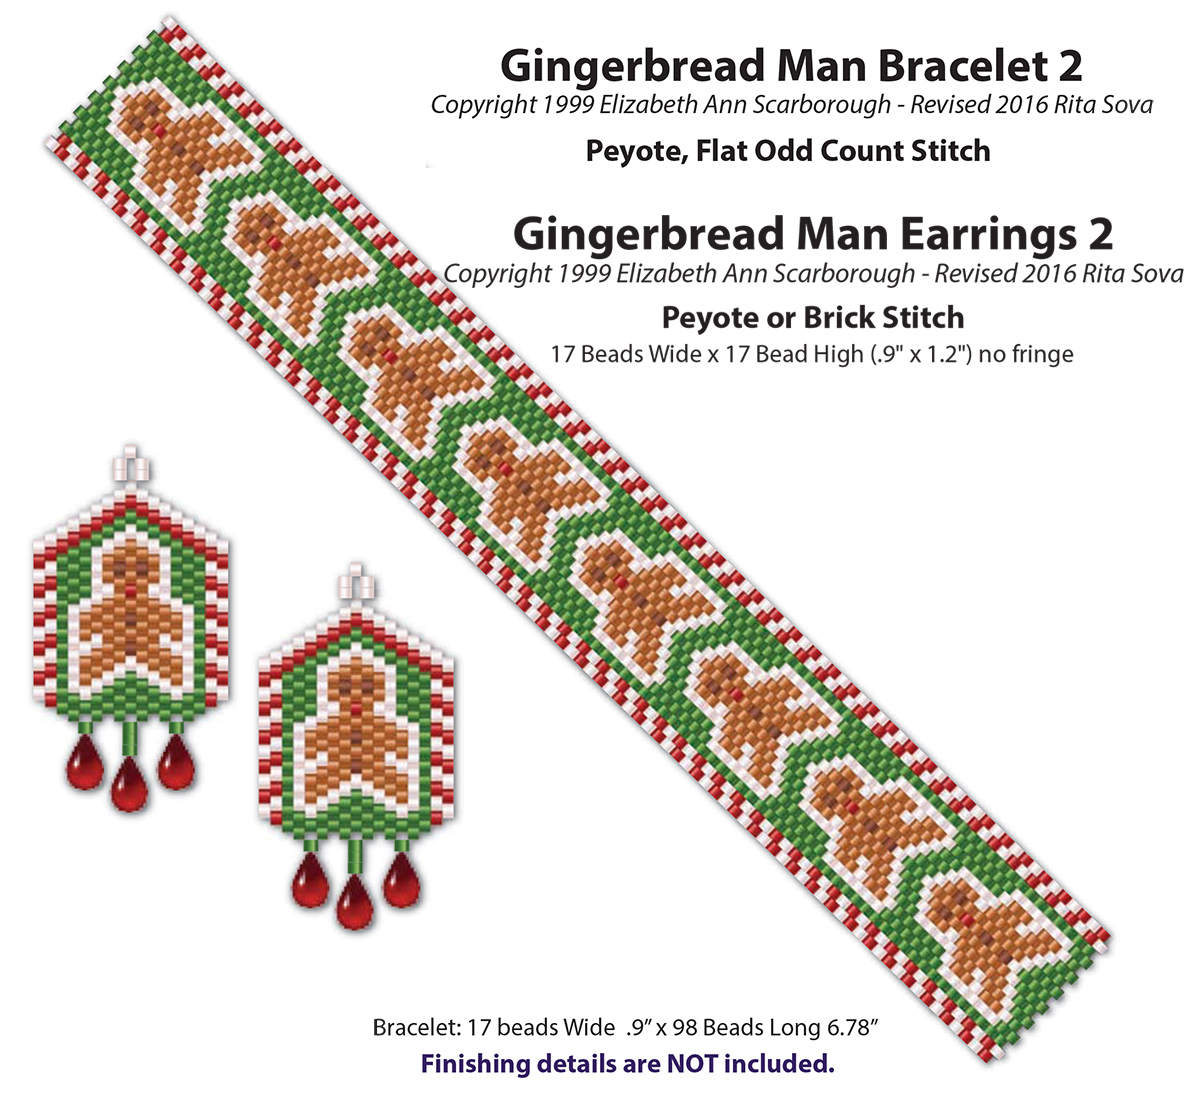 Gingerbread Man Bracelet 2 and Earrings 2